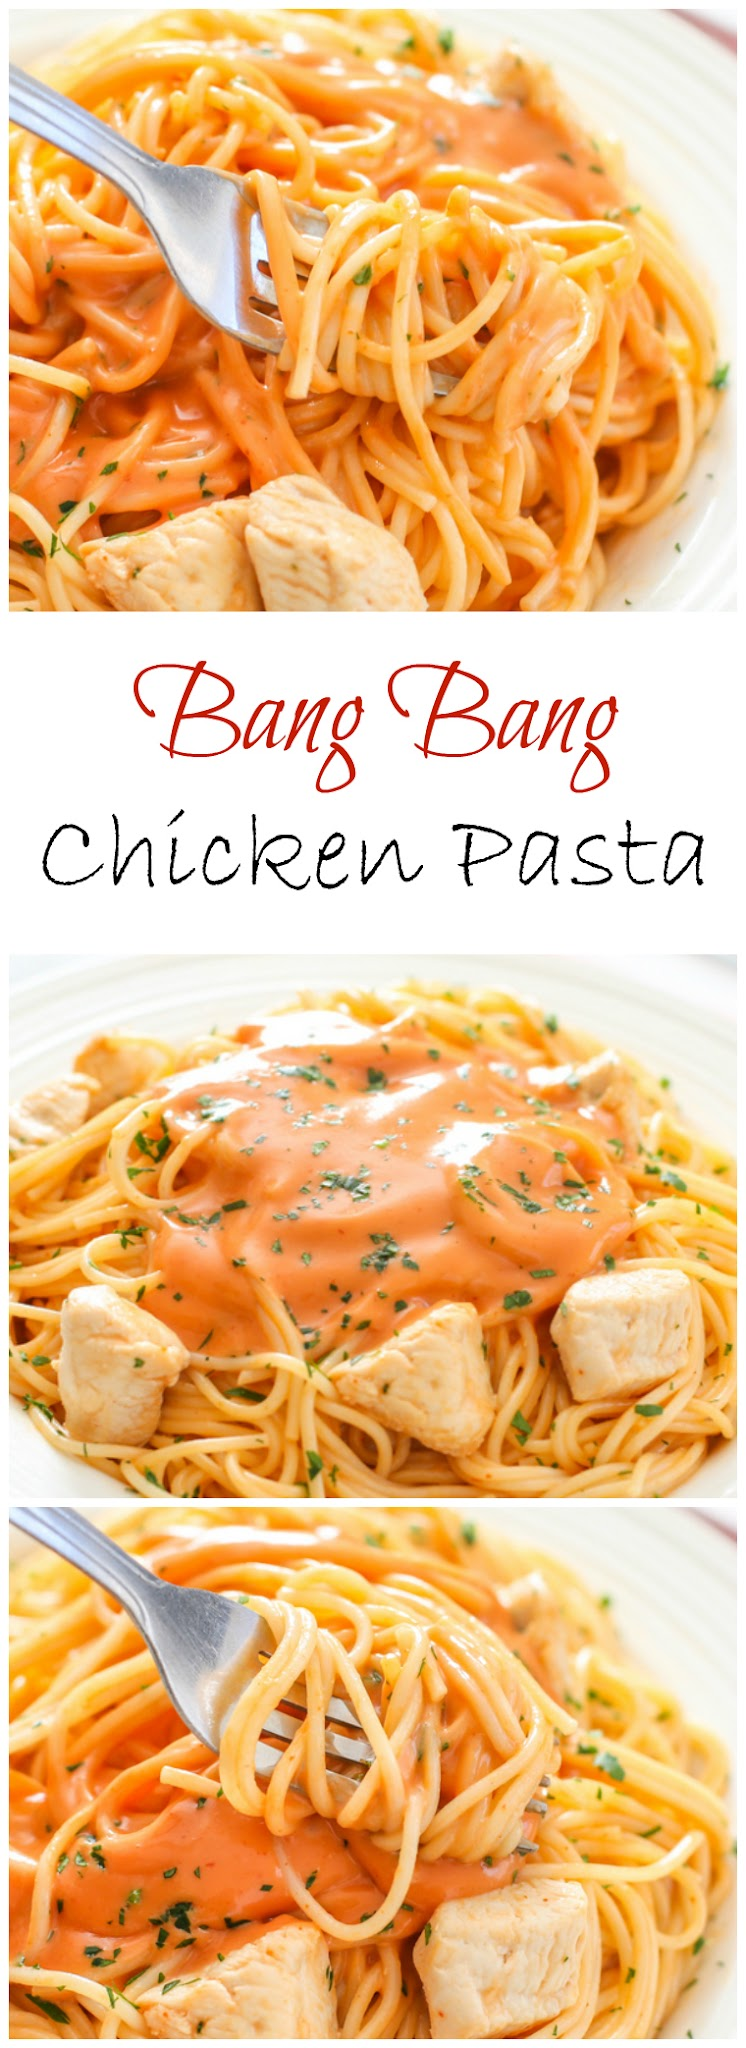 bang bang chicken pasta photo collage